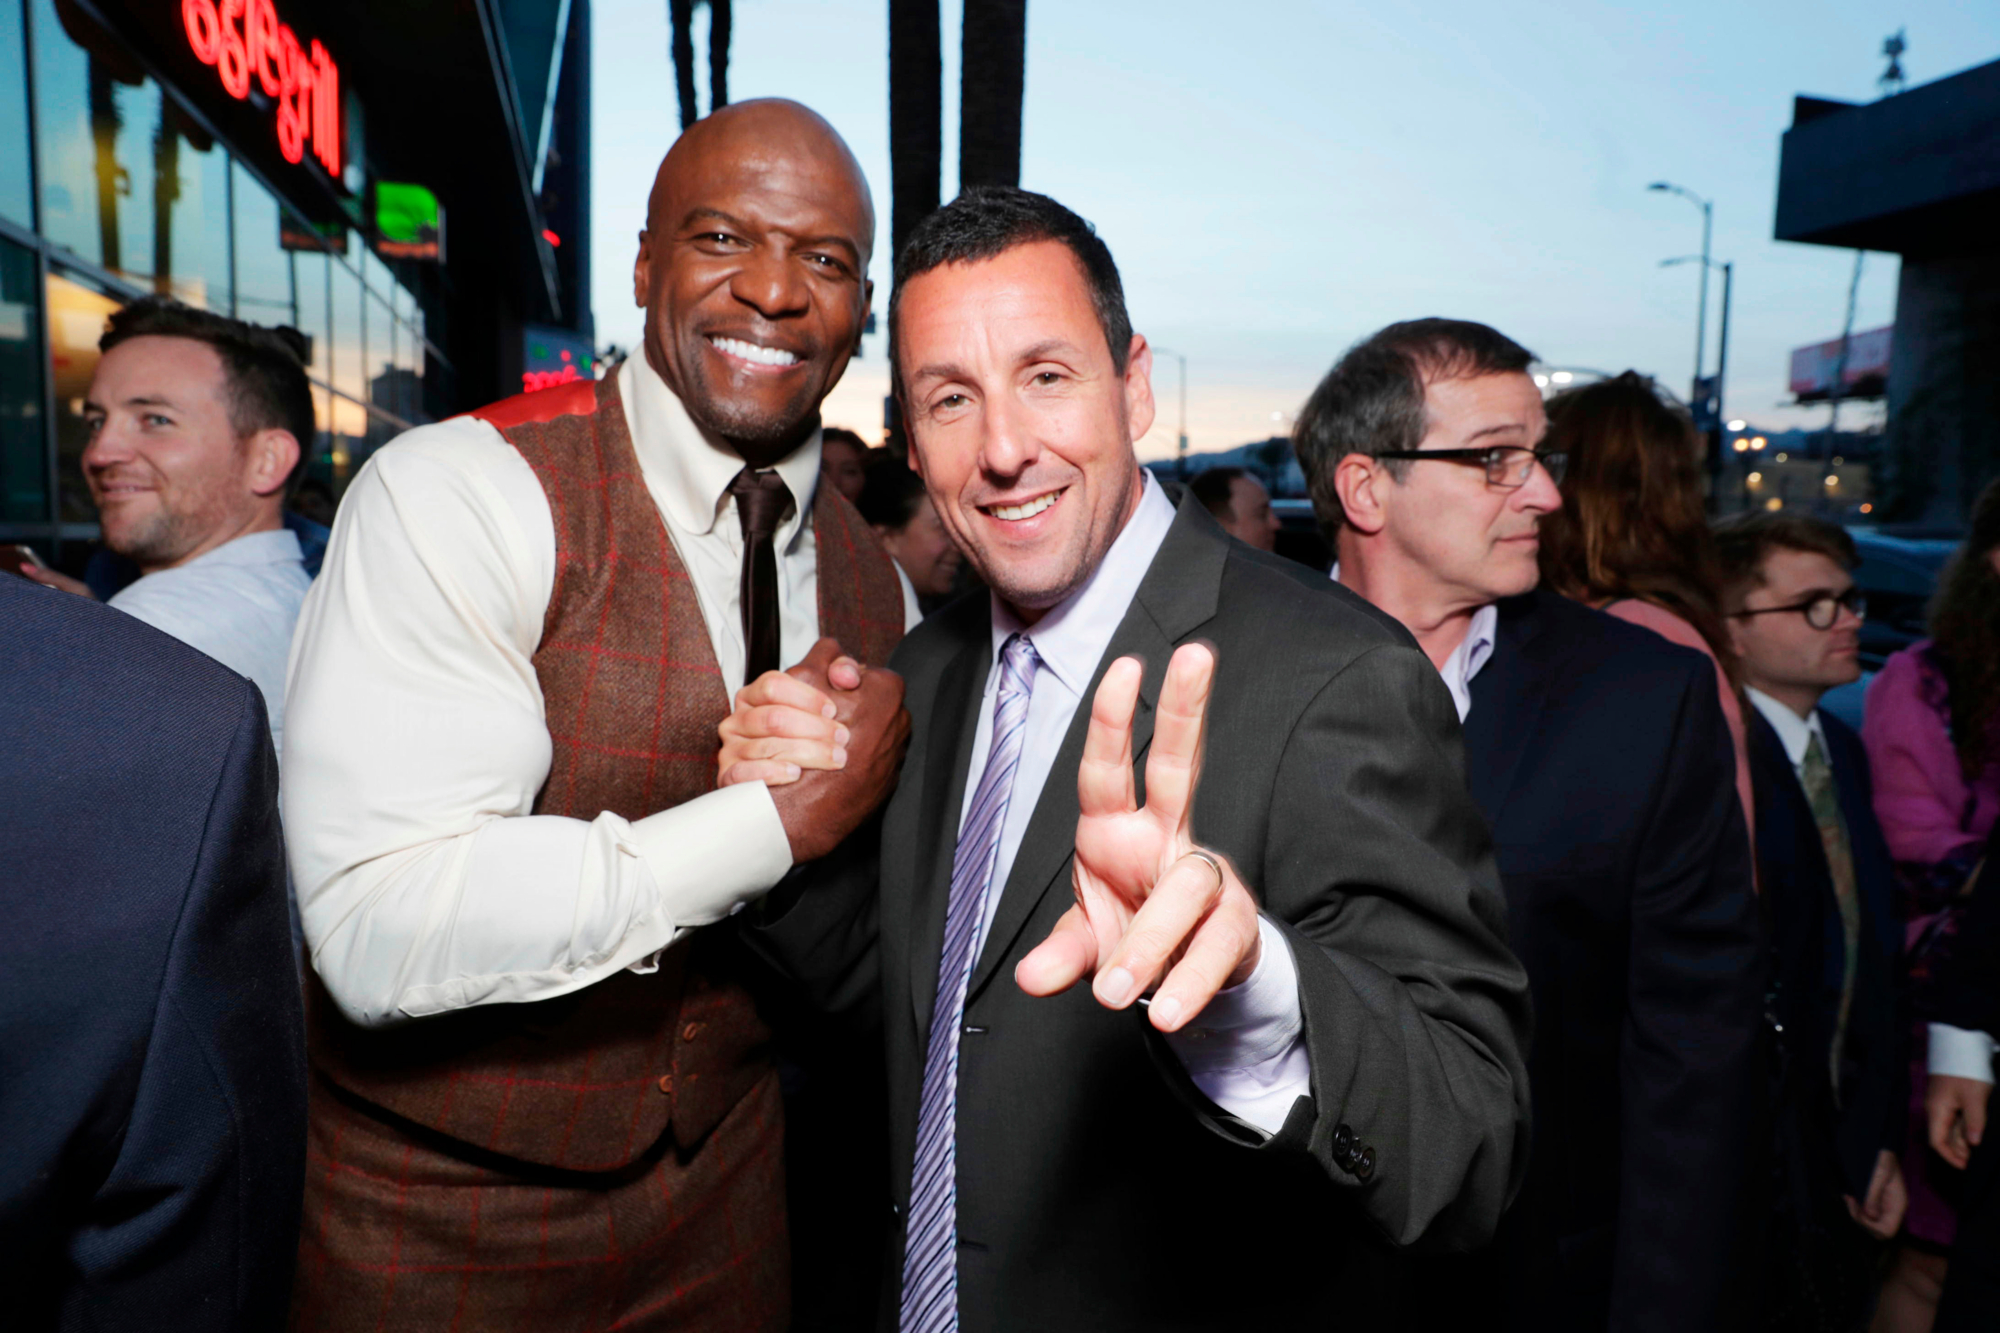 Terry crews and Adam sandler